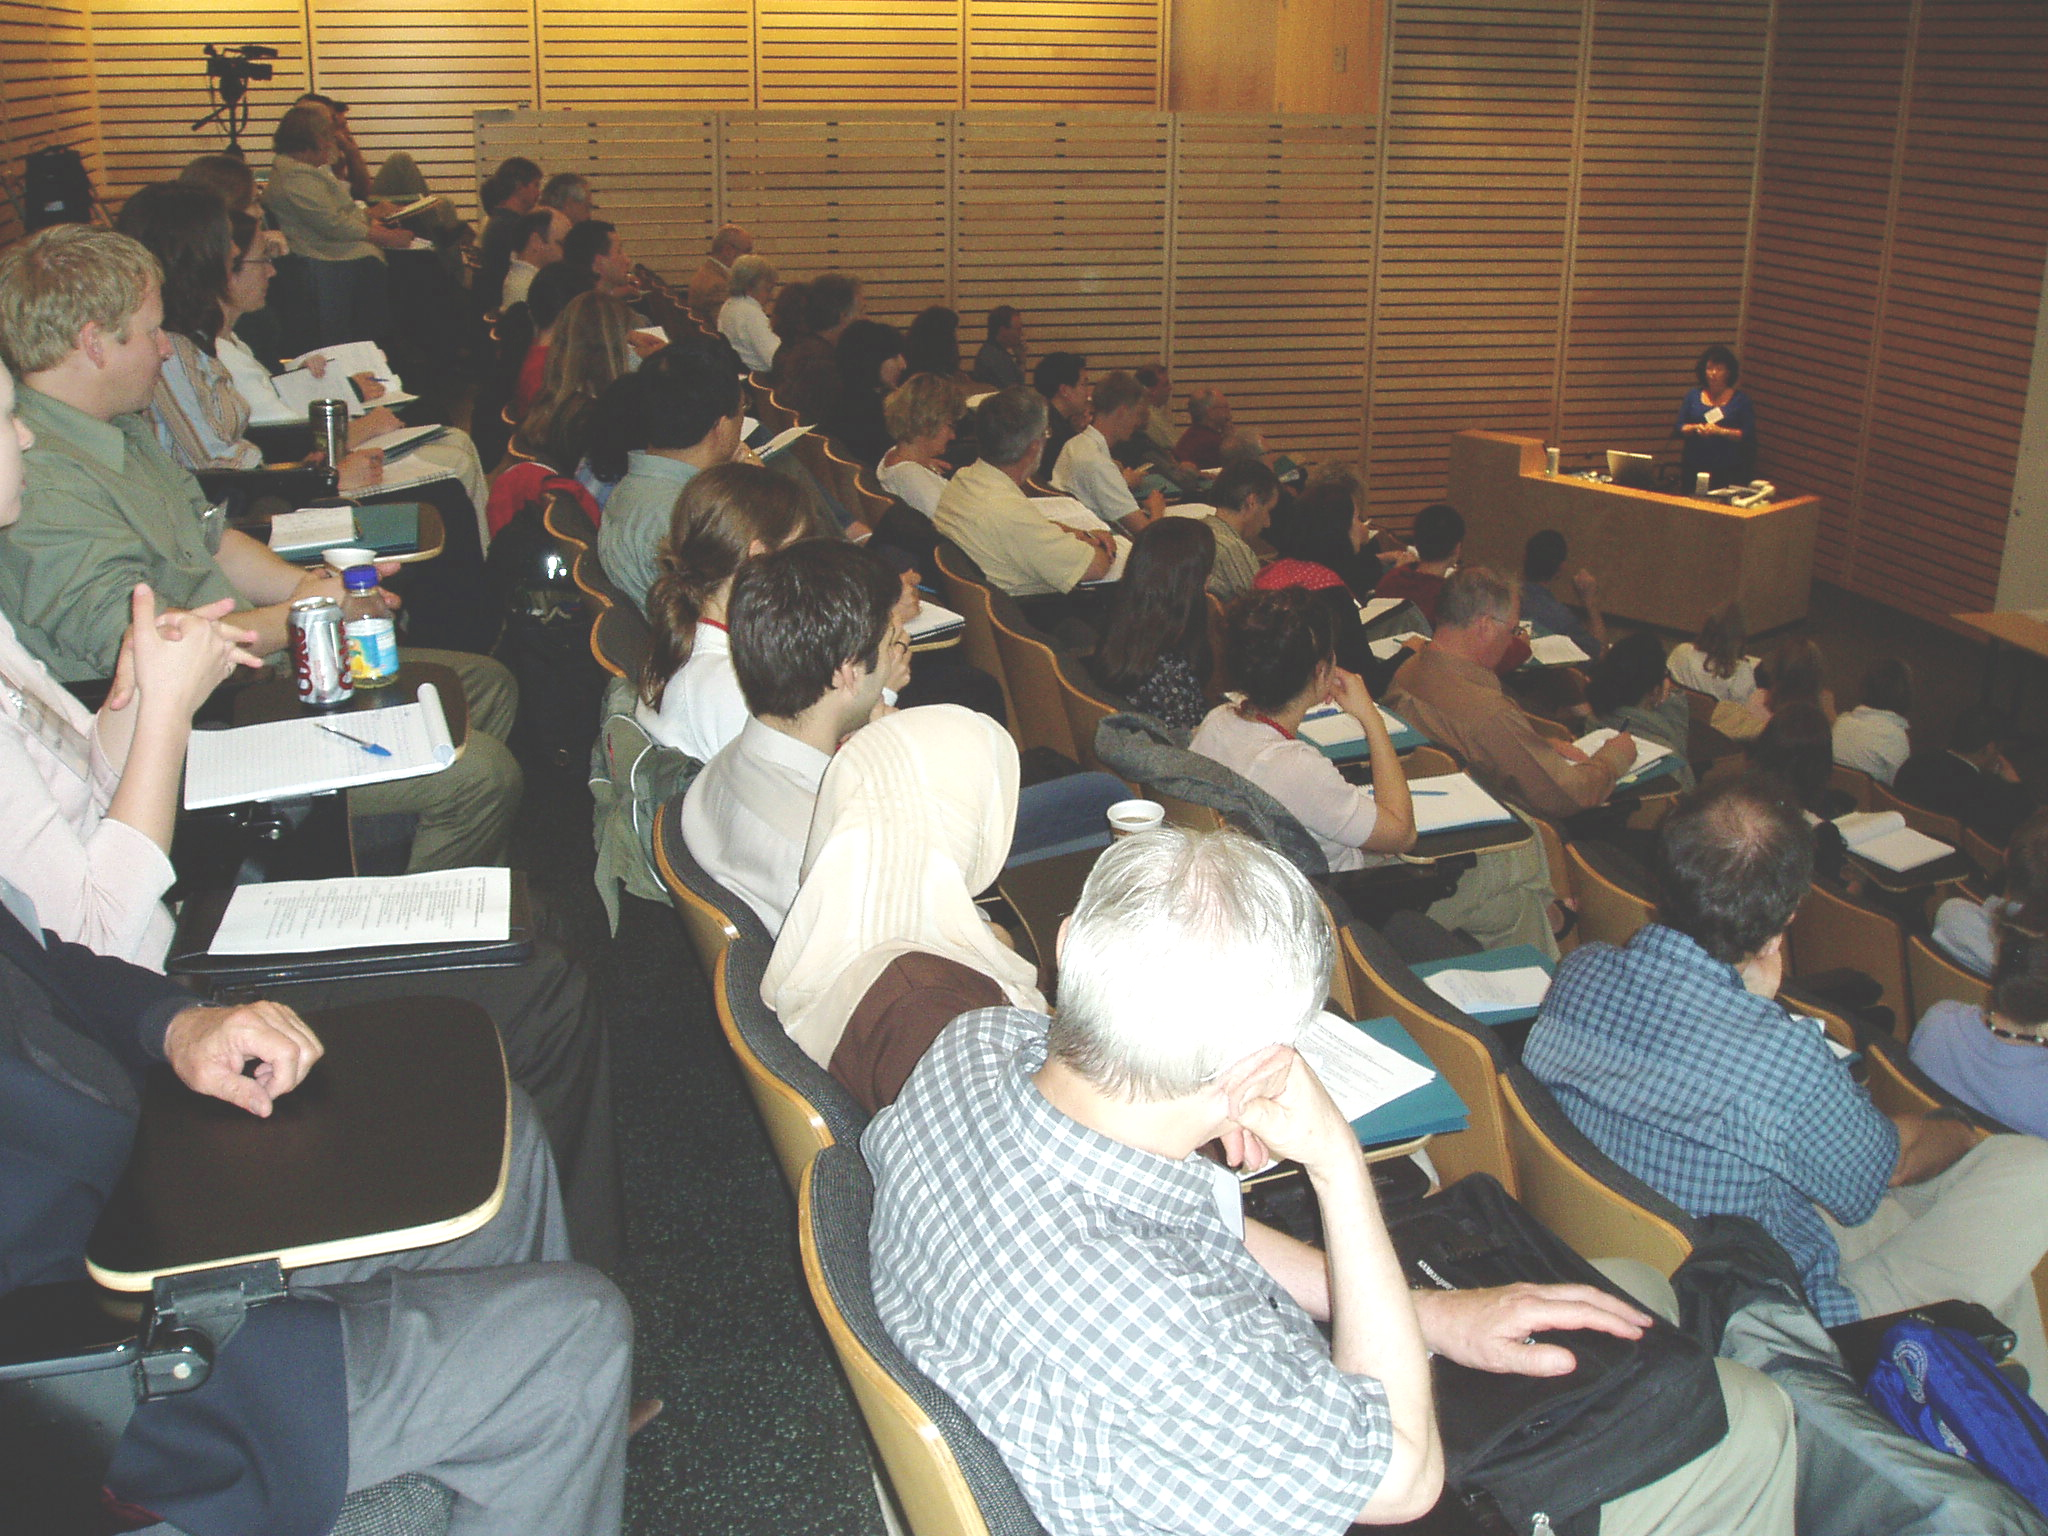 The first in the series of 'knowledge translation' events was held at UBC in June 2007.